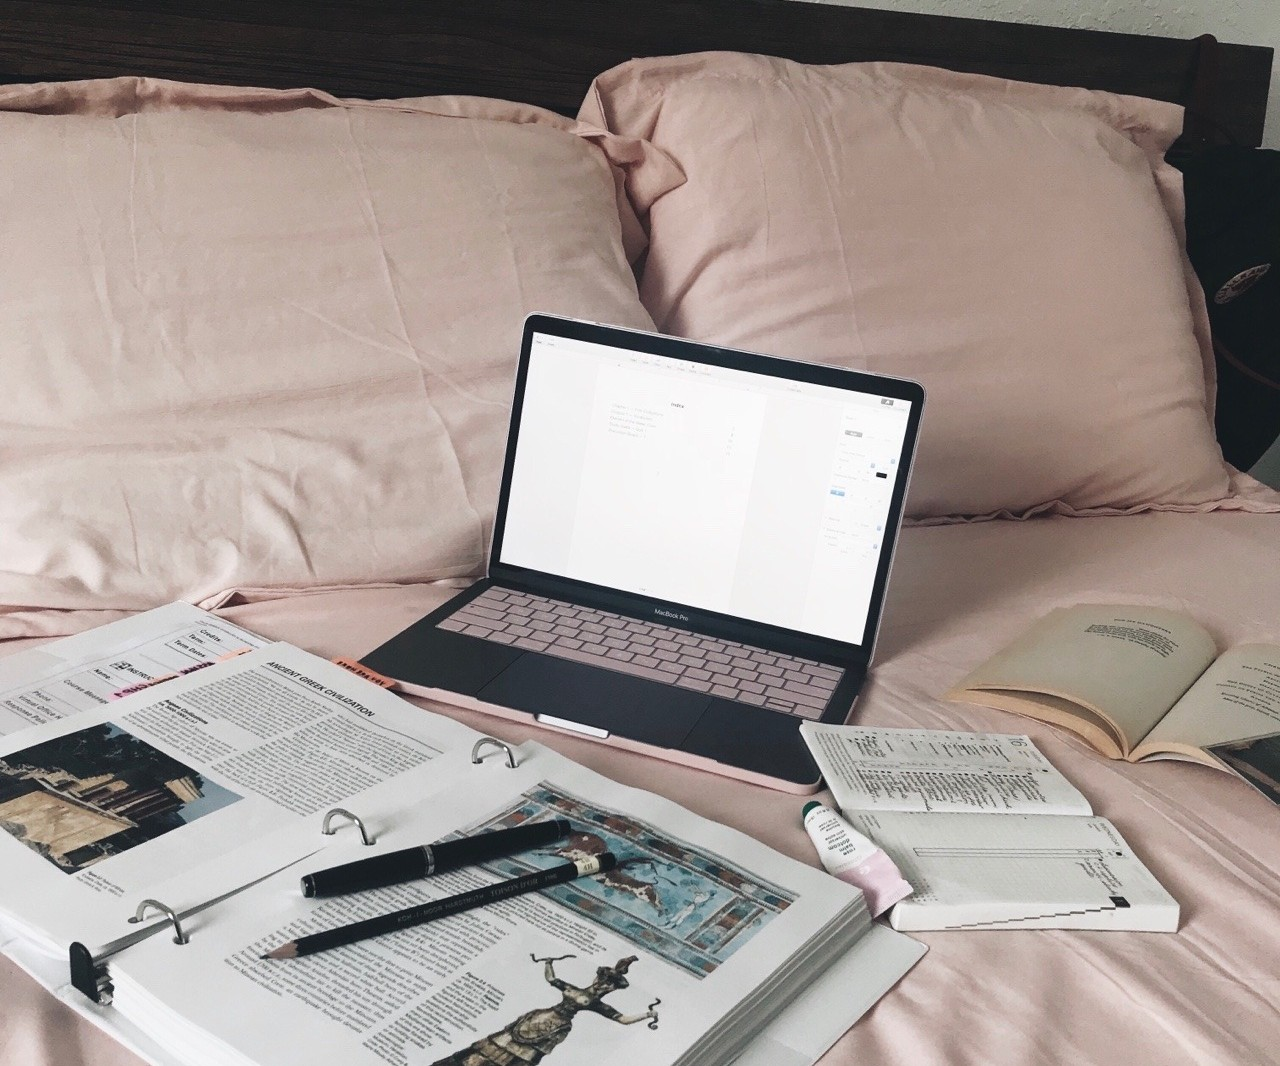 Image About Tumblr In Study Aesthetic By Dahiandra